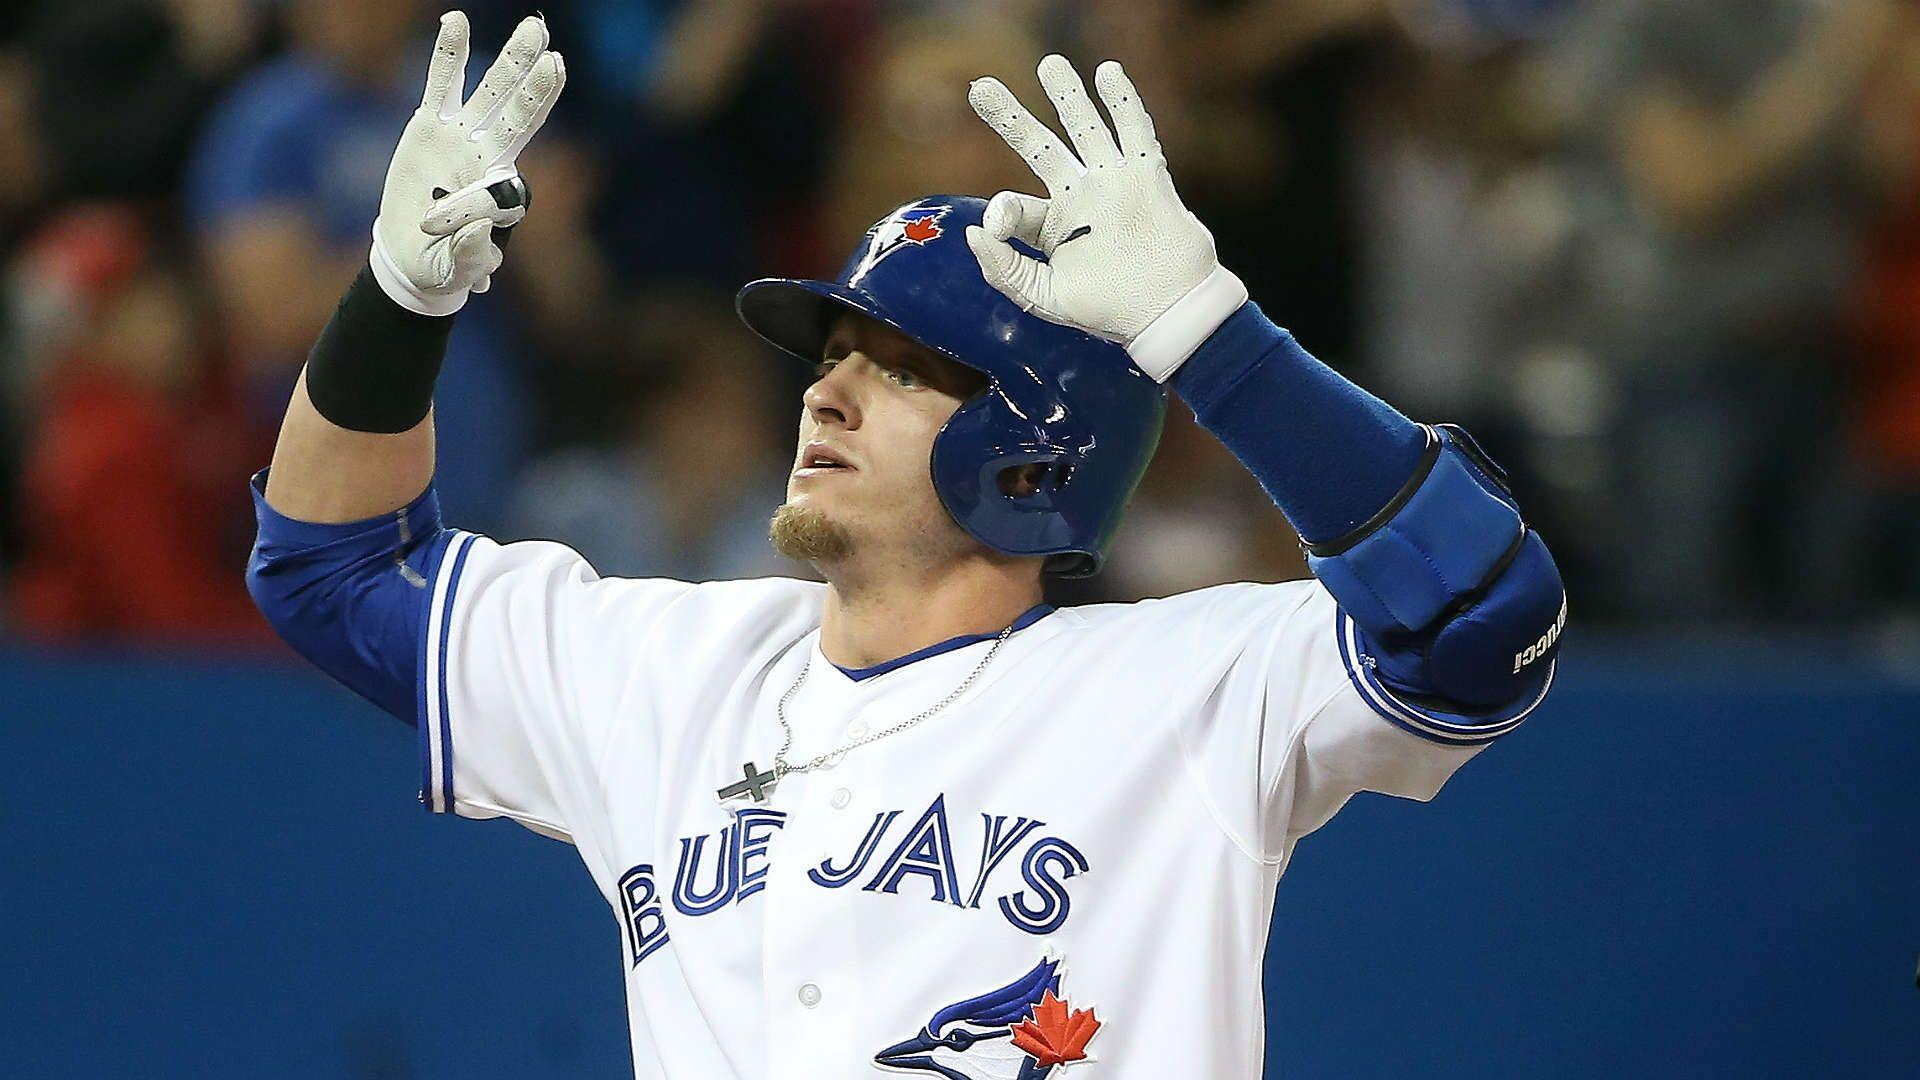 American League MVP Watch: Josh Donaldson tops crowded field, for